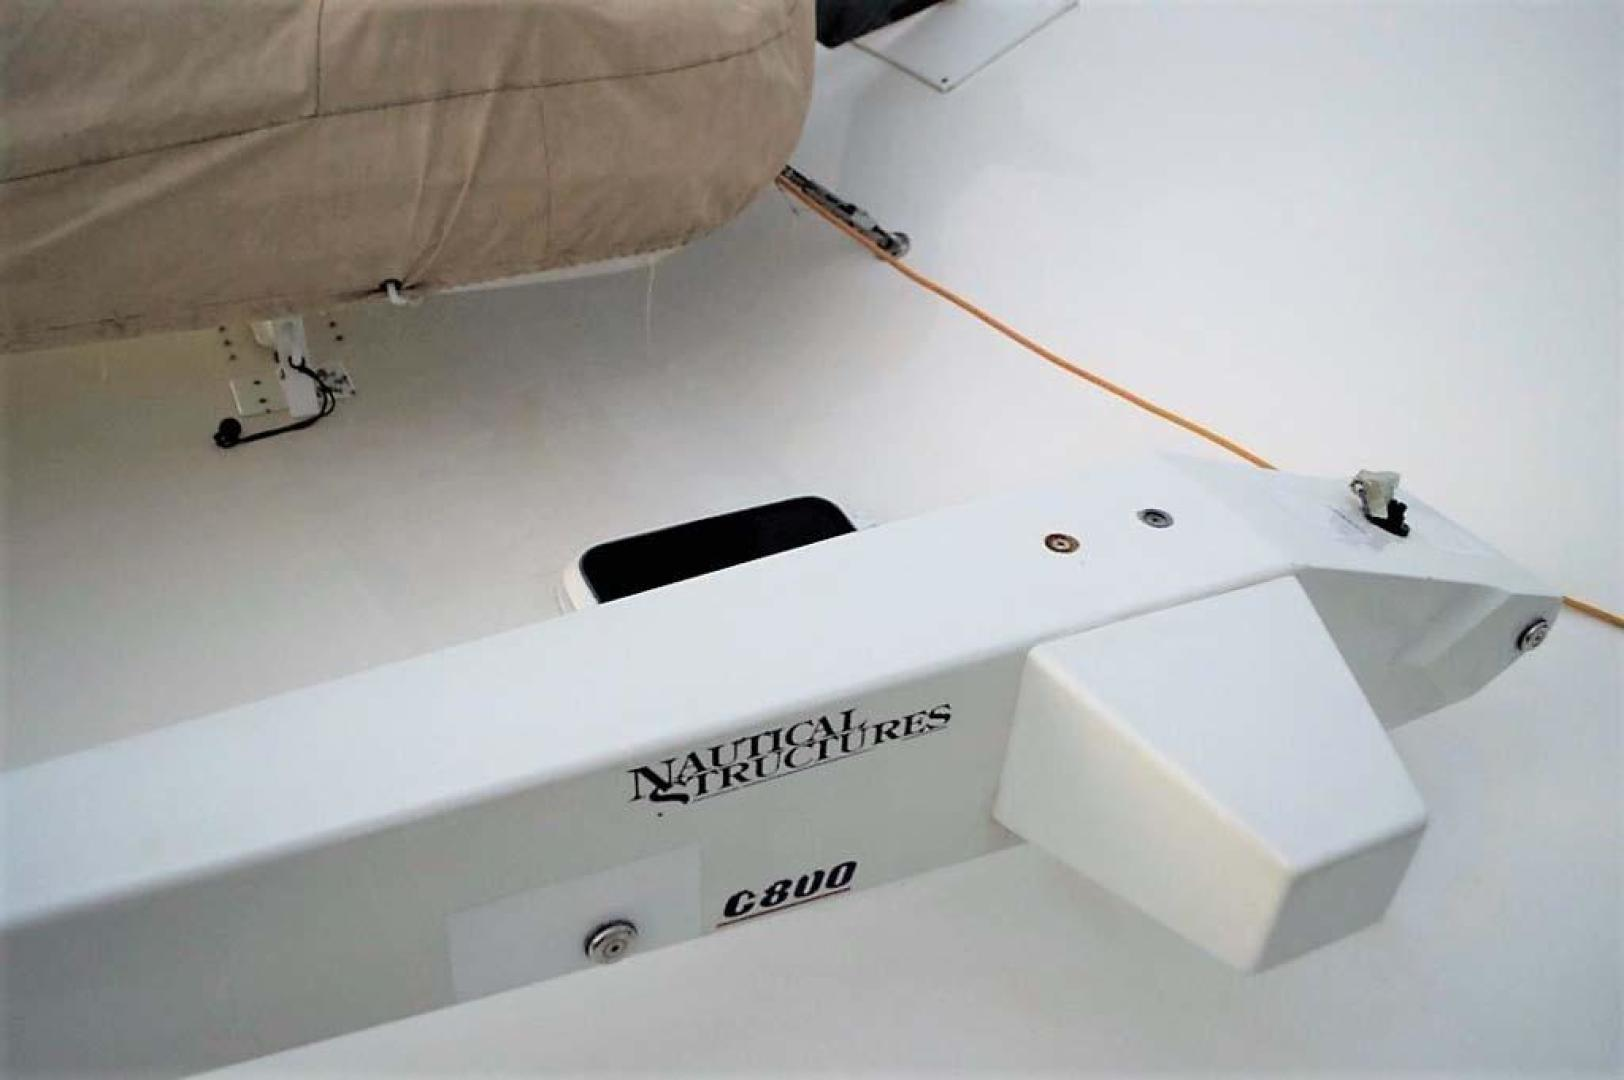 Ocean-Yachts-53-Super-Sport-1998-Made-in-the-Shade-Stuart-United-States-Davit-929975